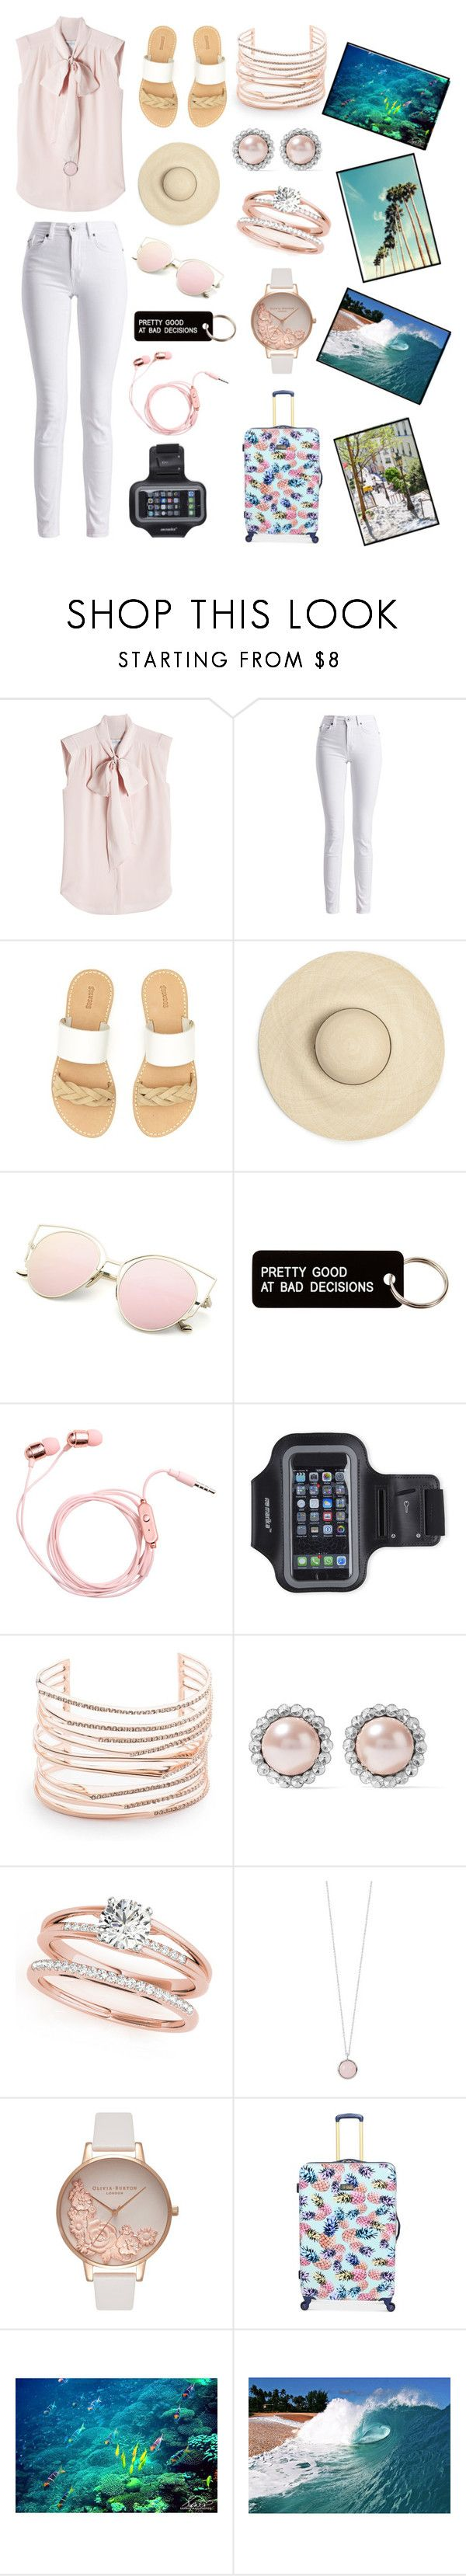 """Perfect Vacation"" by kmrichardson20 ❤ liked on Polyvore featuring MaxMara, Barbour International, Soludos, Various Projects, Marika, Alexis Bittar, Miu Miu, Olivia Burton and Jessica Simpson"